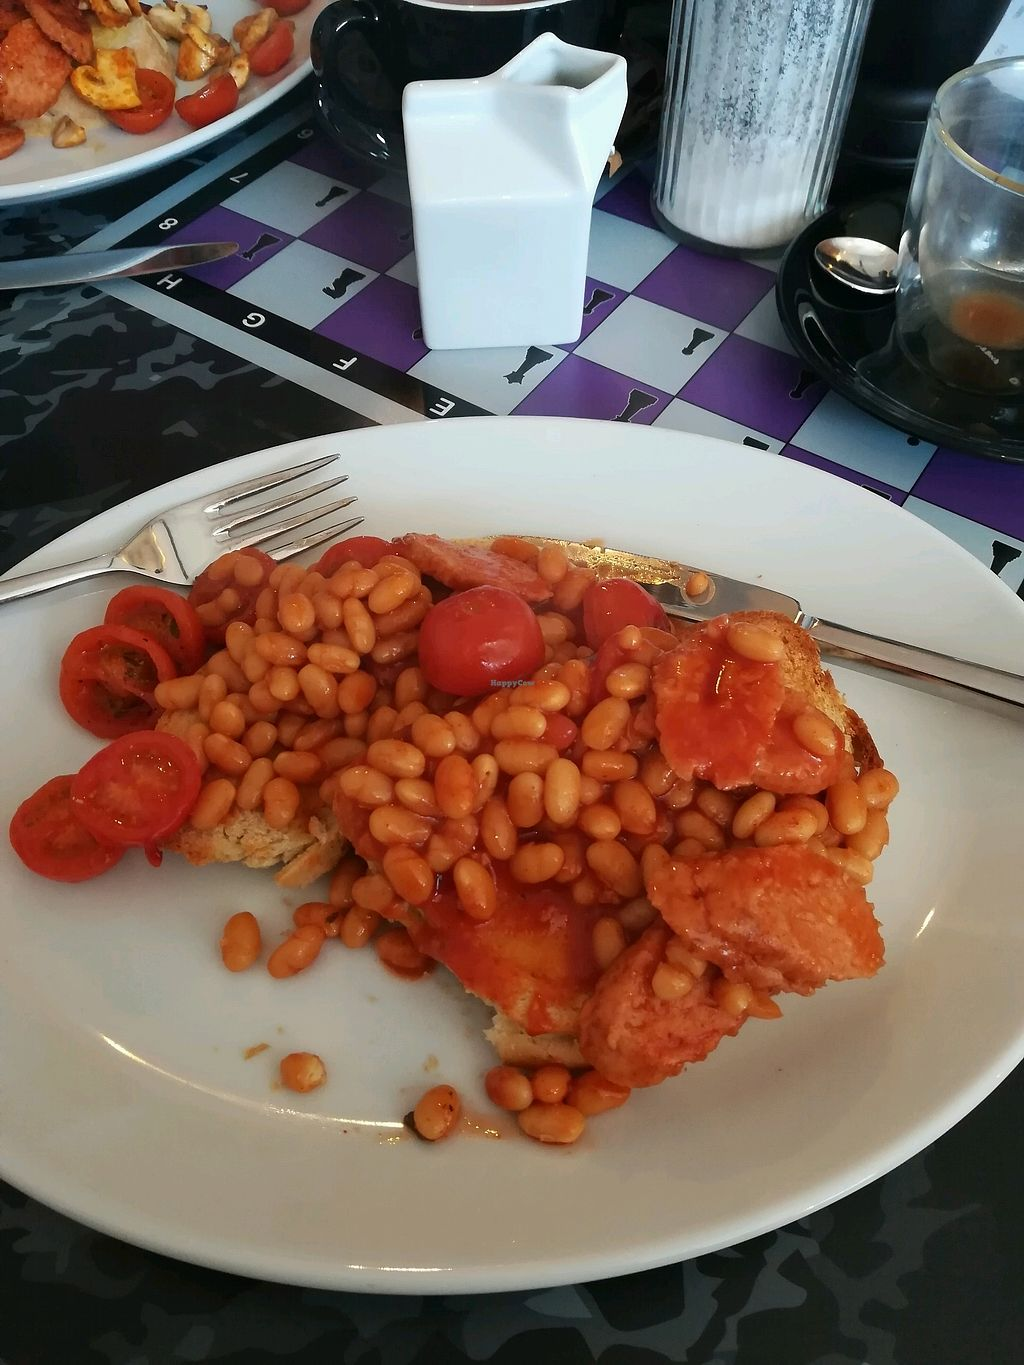 "Photo of Bean Social  by <a href=""/members/profile/AndyRedfern"">AndyRedfern</a> <br/>Posh beans - great breakfast choice <br/> February 24, 2018  - <a href='/contact/abuse/image/105862/363174'>Report</a>"